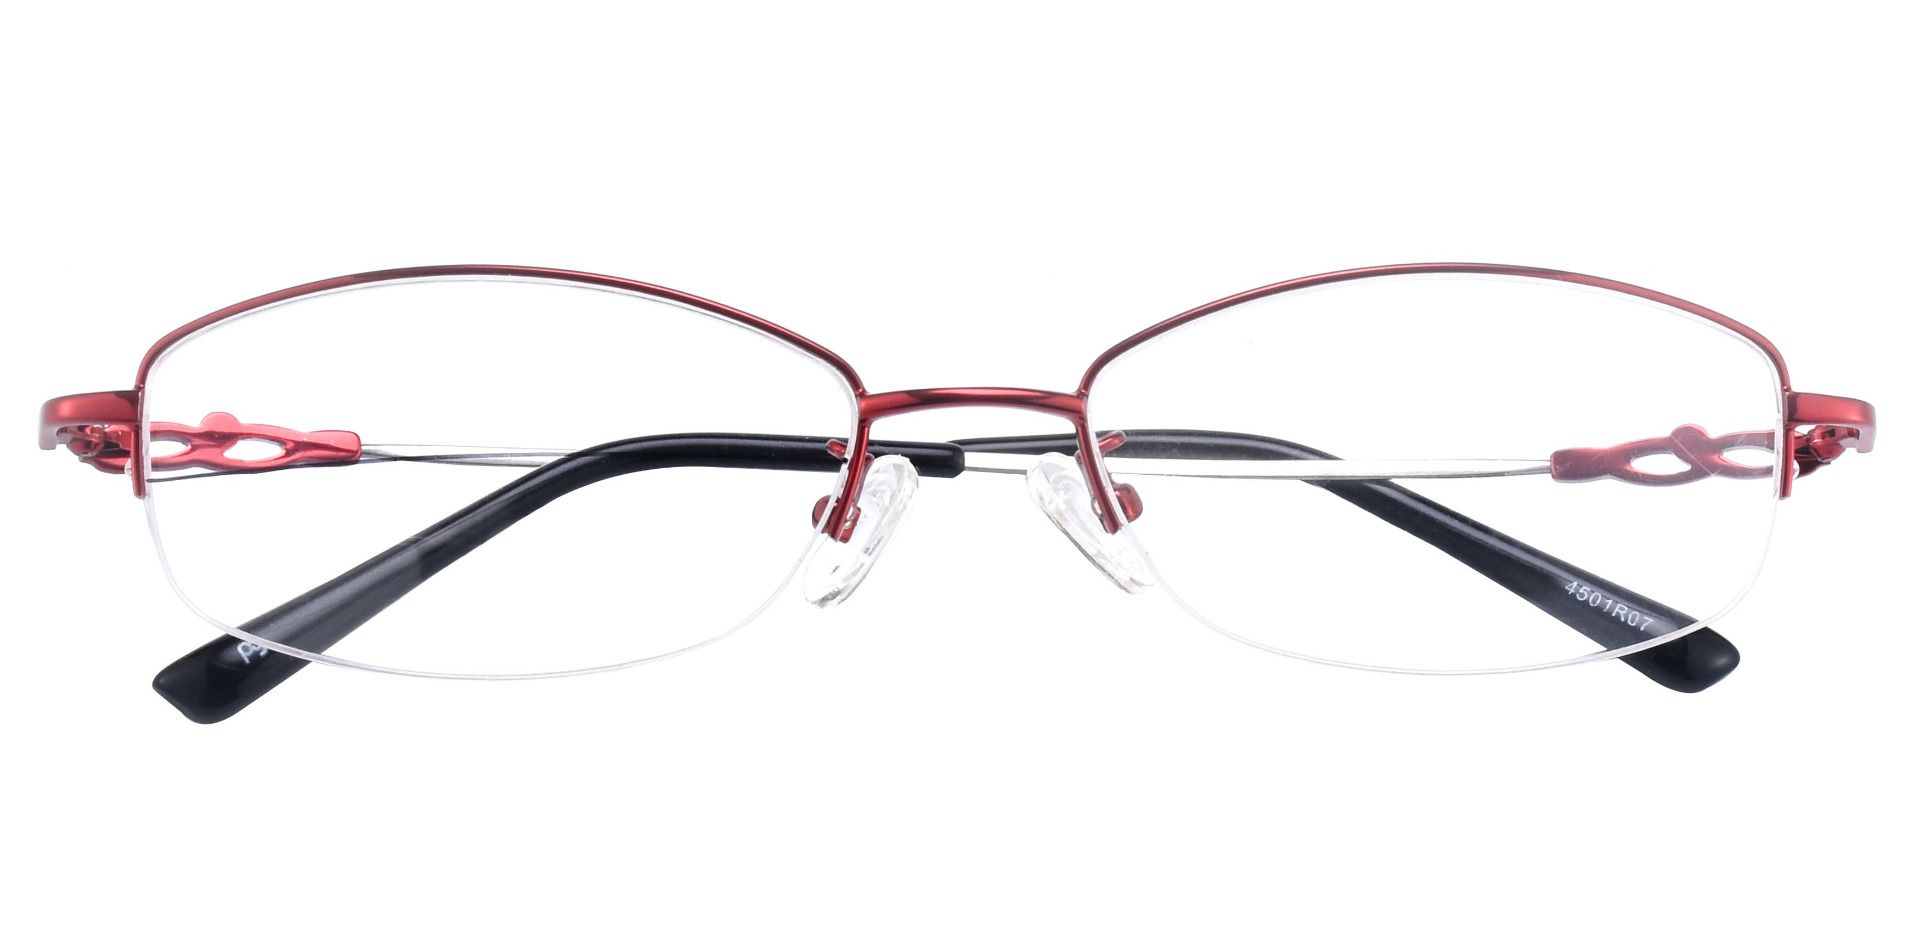 Meadowsweet Oval Reading Glasses - Red